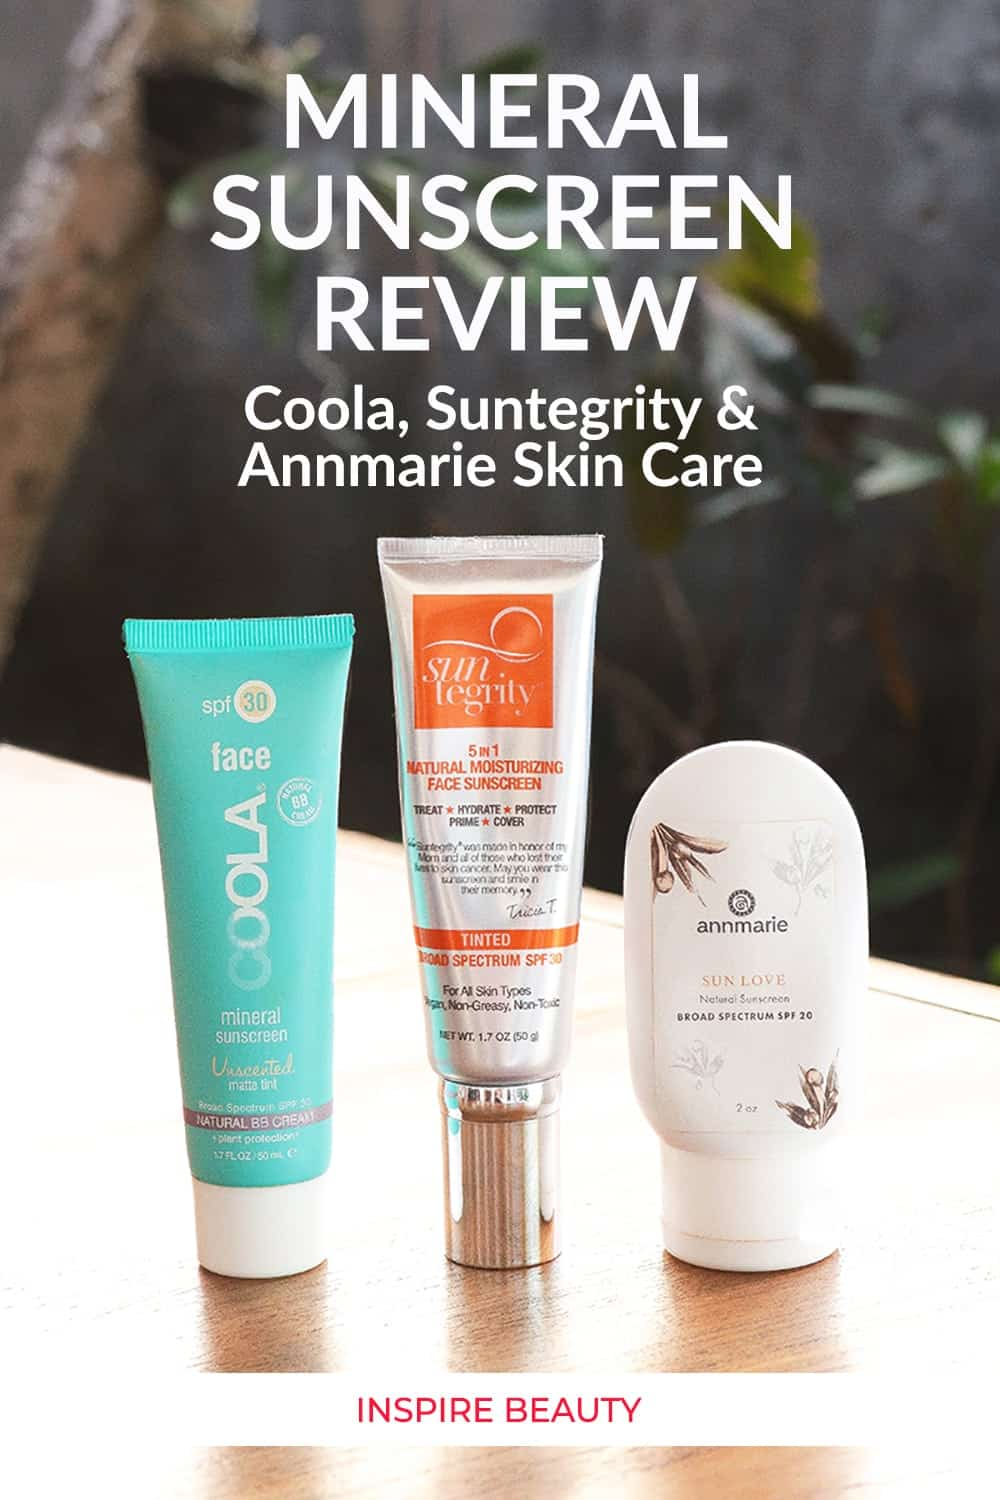 Mineral sunscreen review of Coola Mineral Sunscreen, Suntegrity 5in1 Moisturizing Face Sunscreen, Annmarie Skin Care Sun Love.